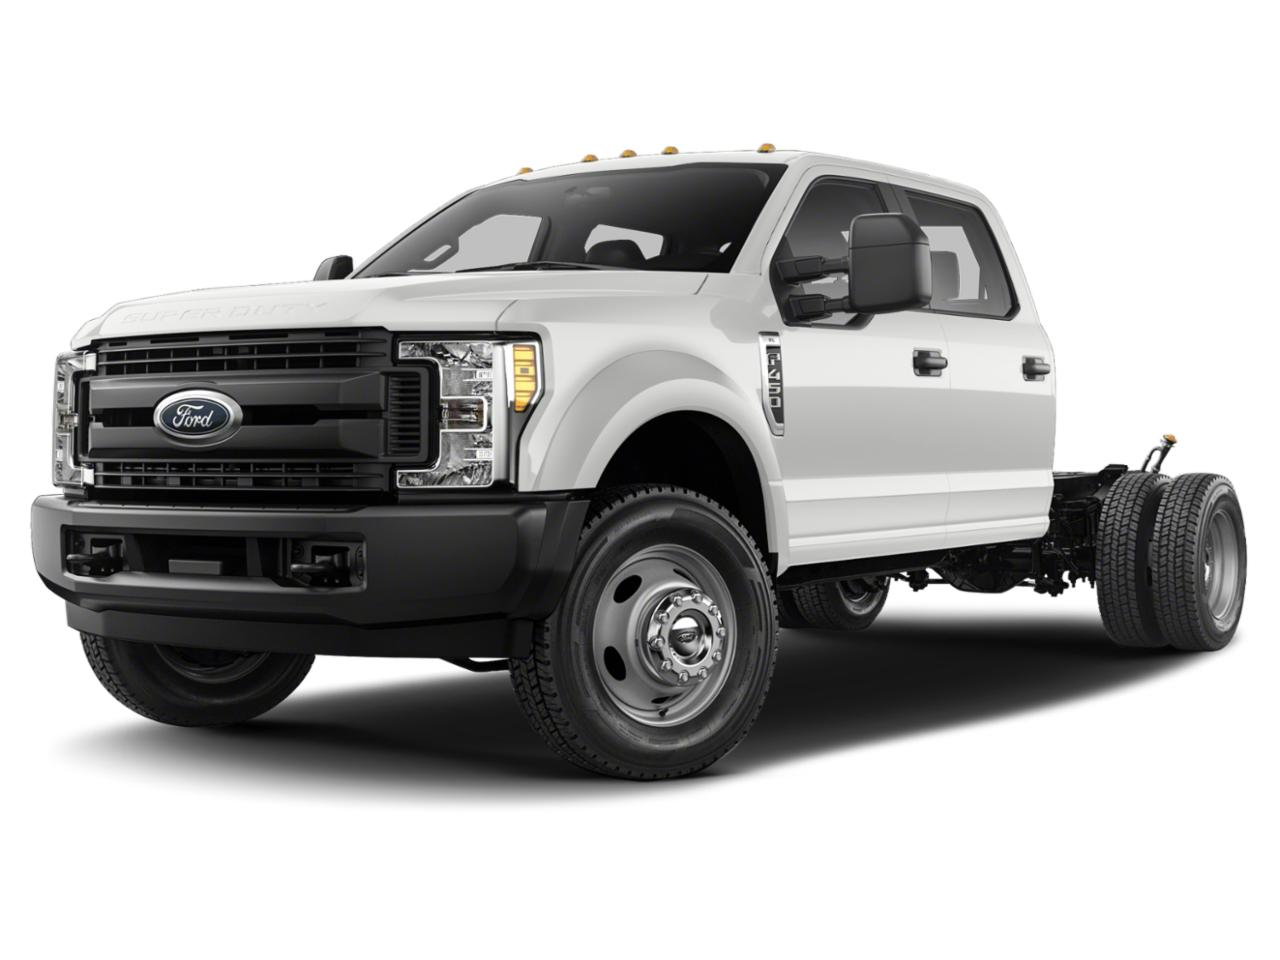 2019 Ford Super Duty F-350 DRW Vehicle Photo in Denver, CO 80123